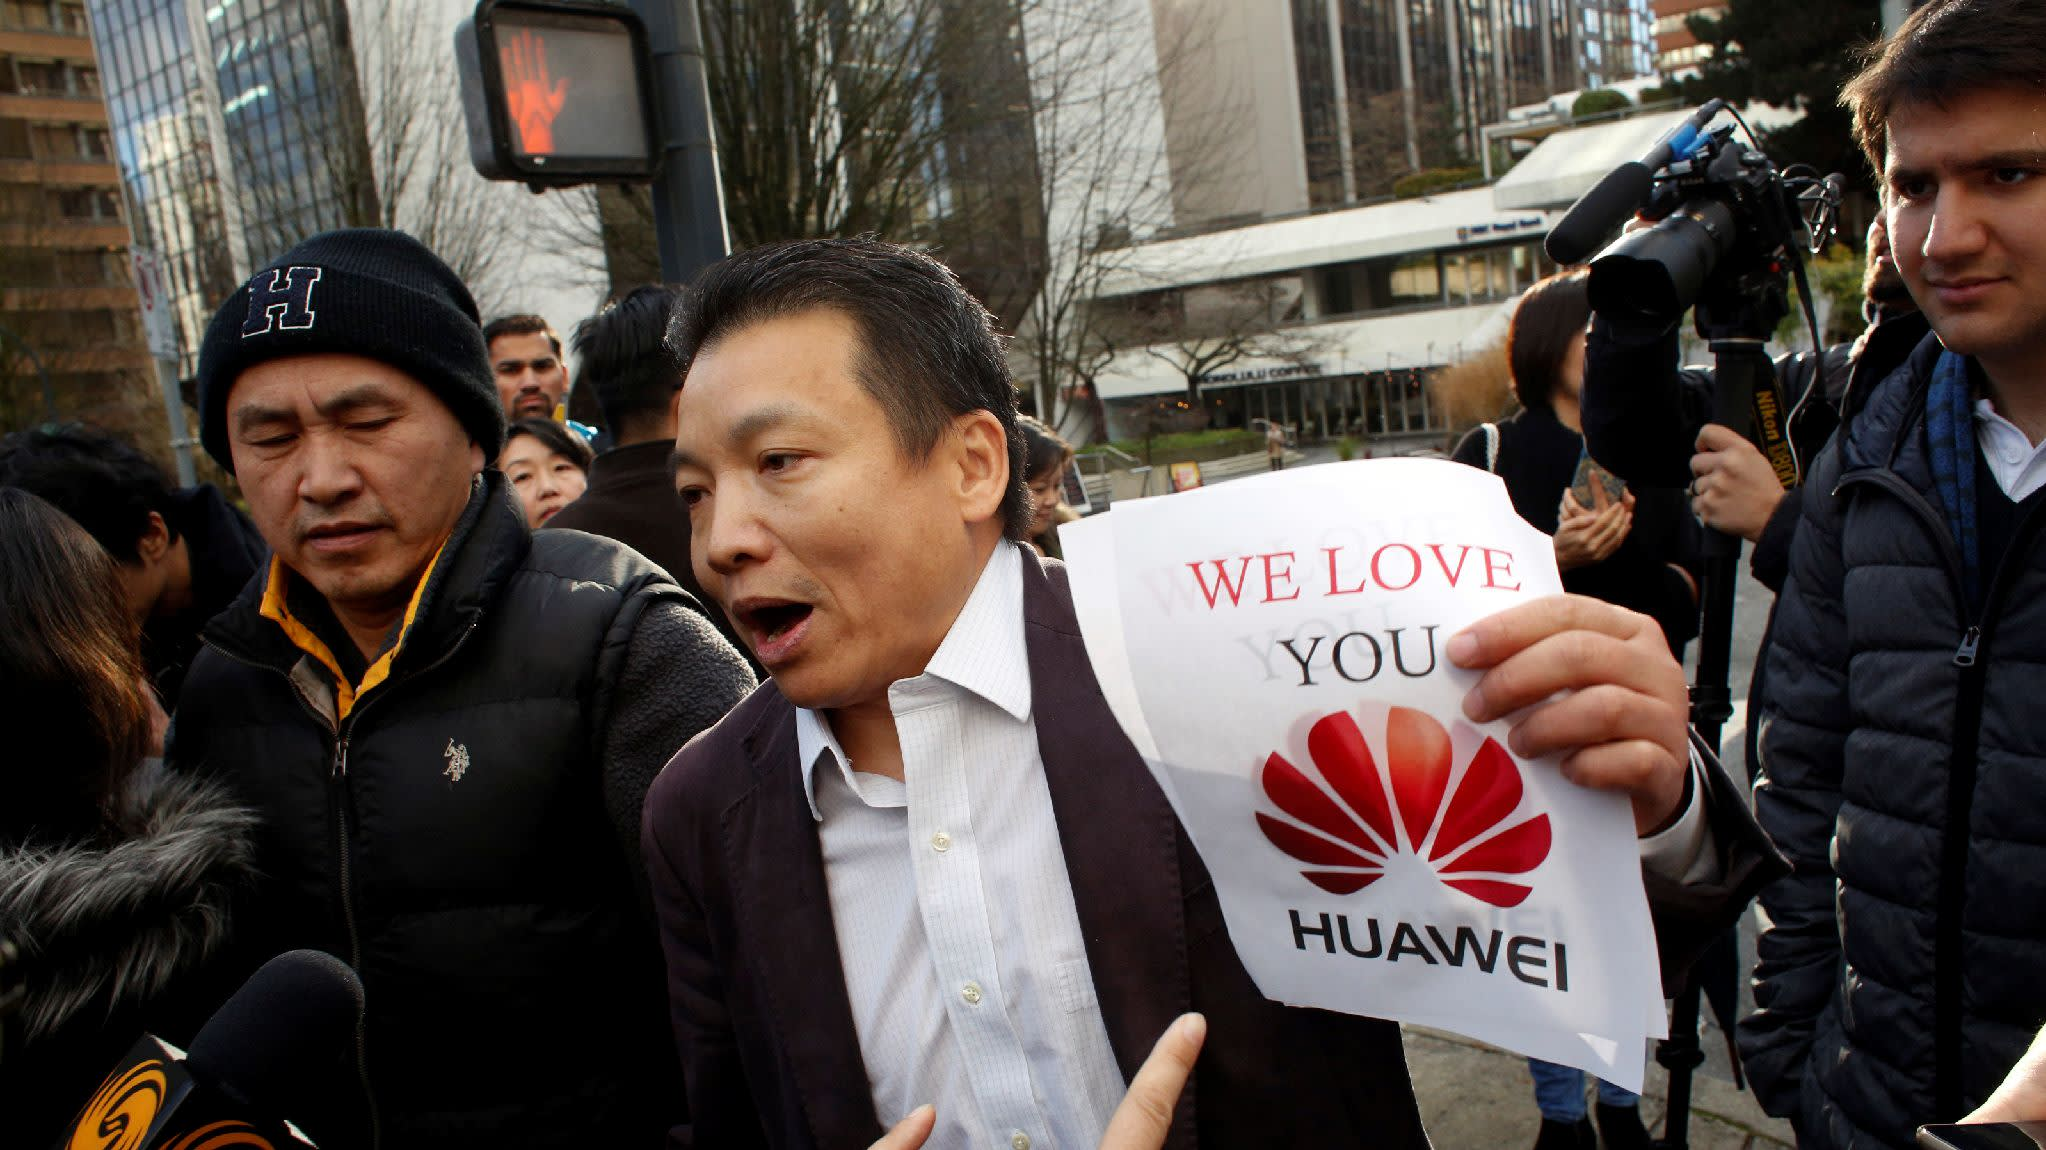 Chinese companies rally around Huawei after CFO arrest ...